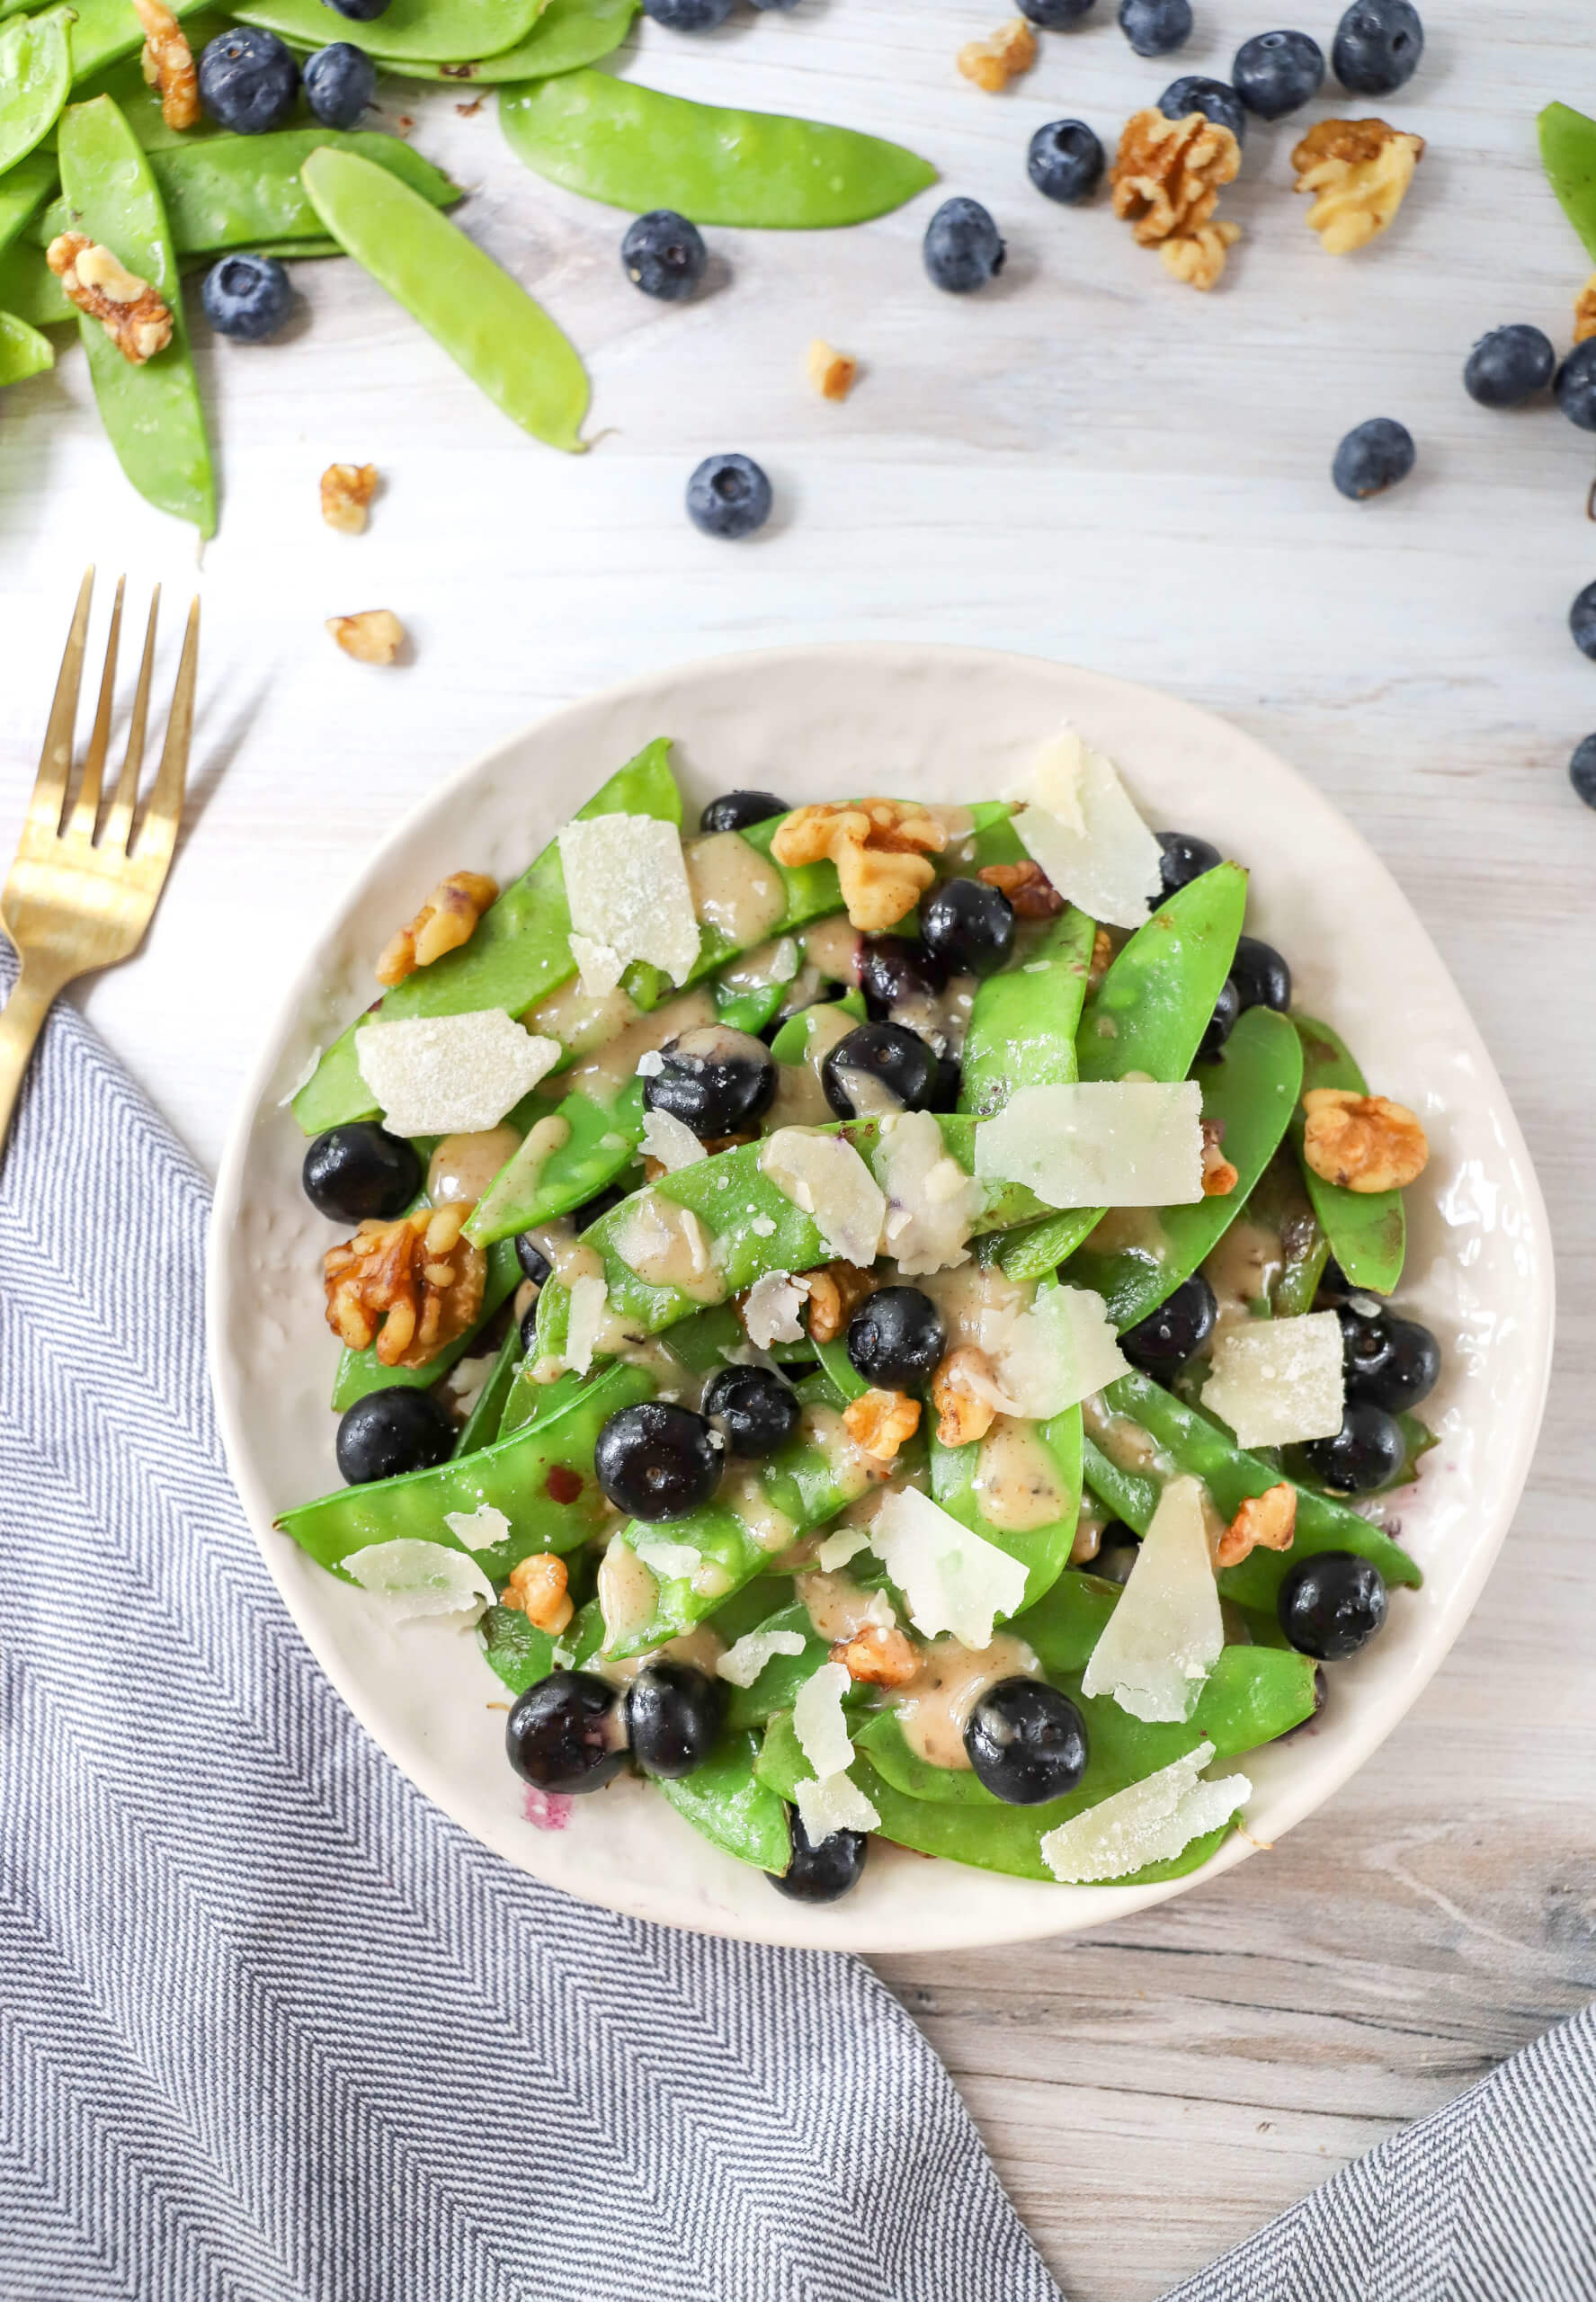 Warm Blueberry and Snow Pea Salad